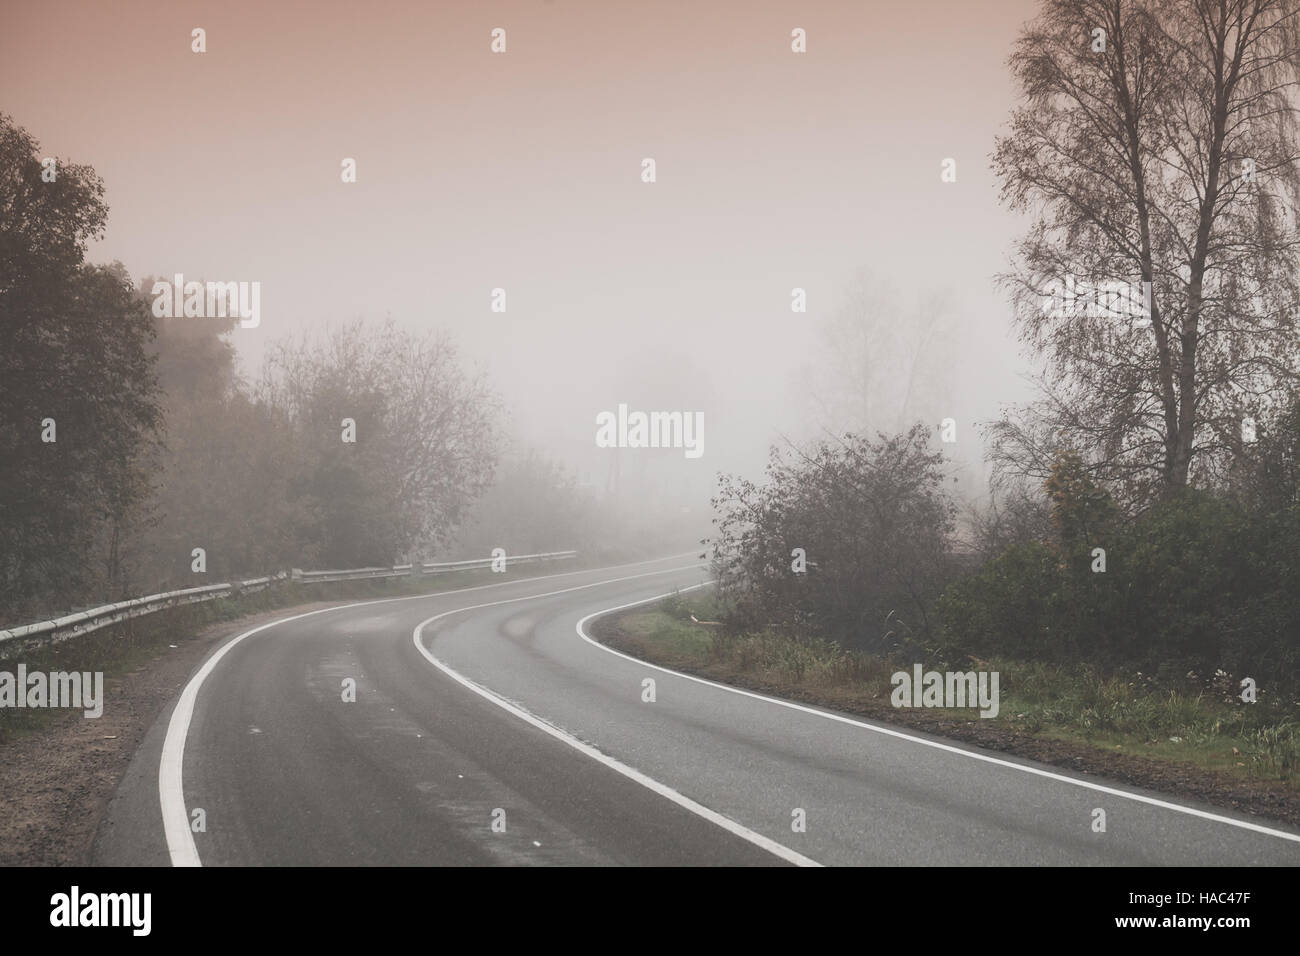 Rural foggy road background photo, turn on highway with trees on roadsides, stylized photo with warm tonal correction effect, old style filter Stock Photo